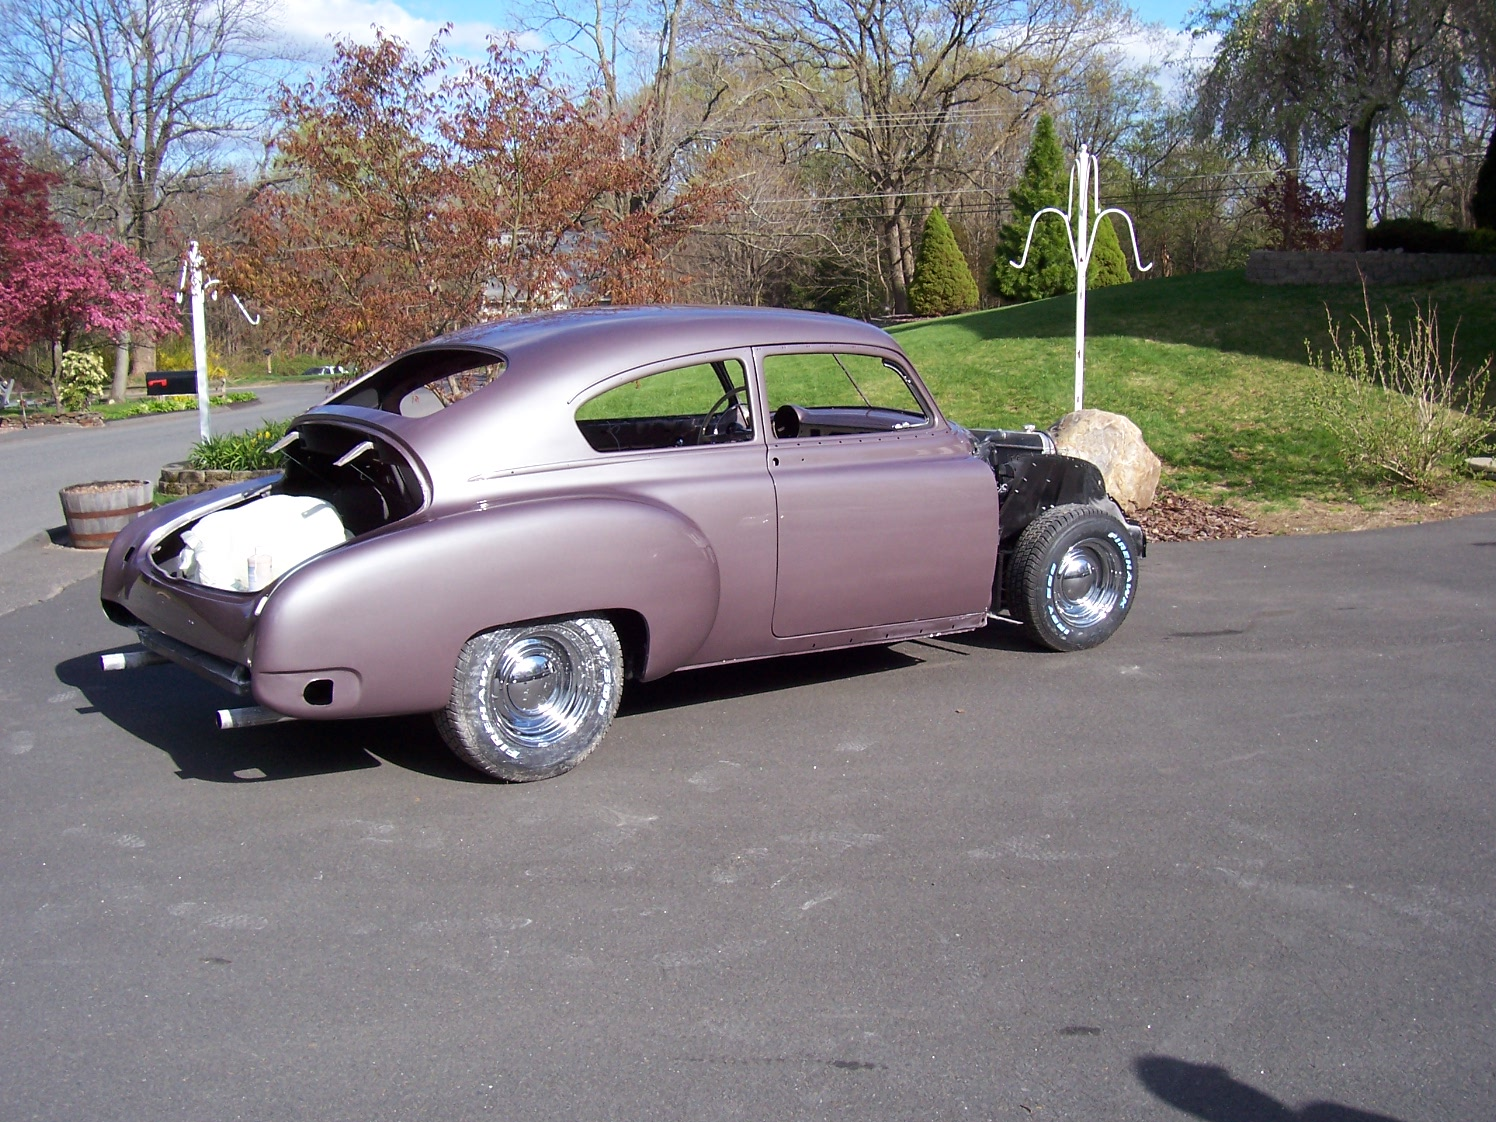 Click image for larger version  Name:2005_021650chevypicnewpaint0007.JPG Views:110 Size:670.7 KB ID:46014